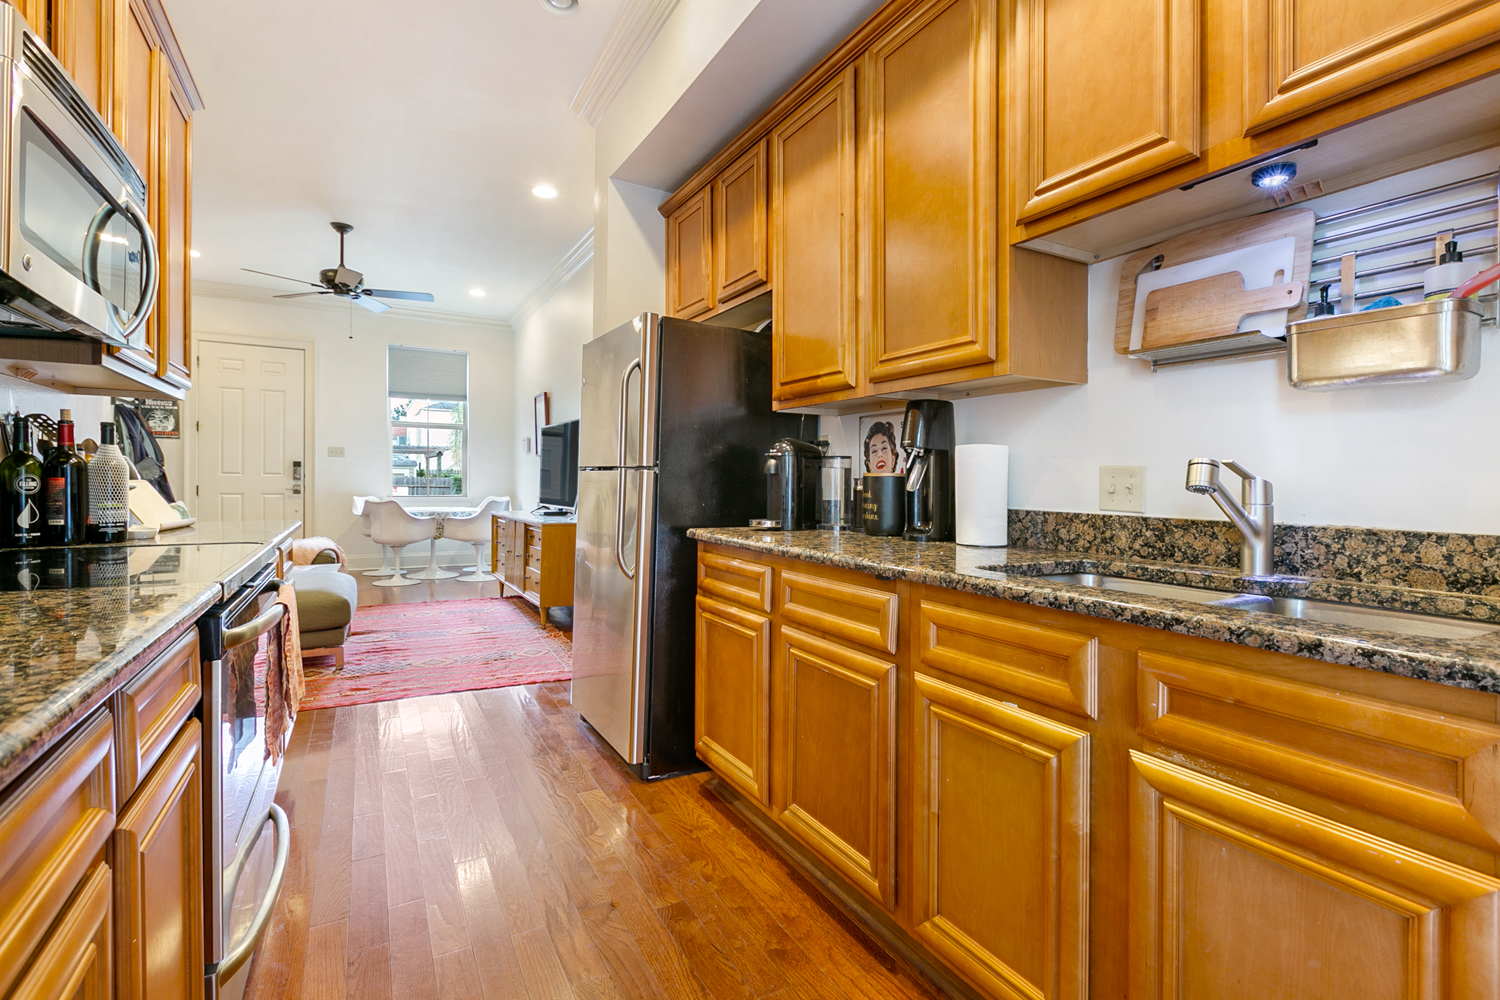 Uptown, Condo, 2 beds, 1.5 baths, $2500 per month New Orleans Rental - devie image_3